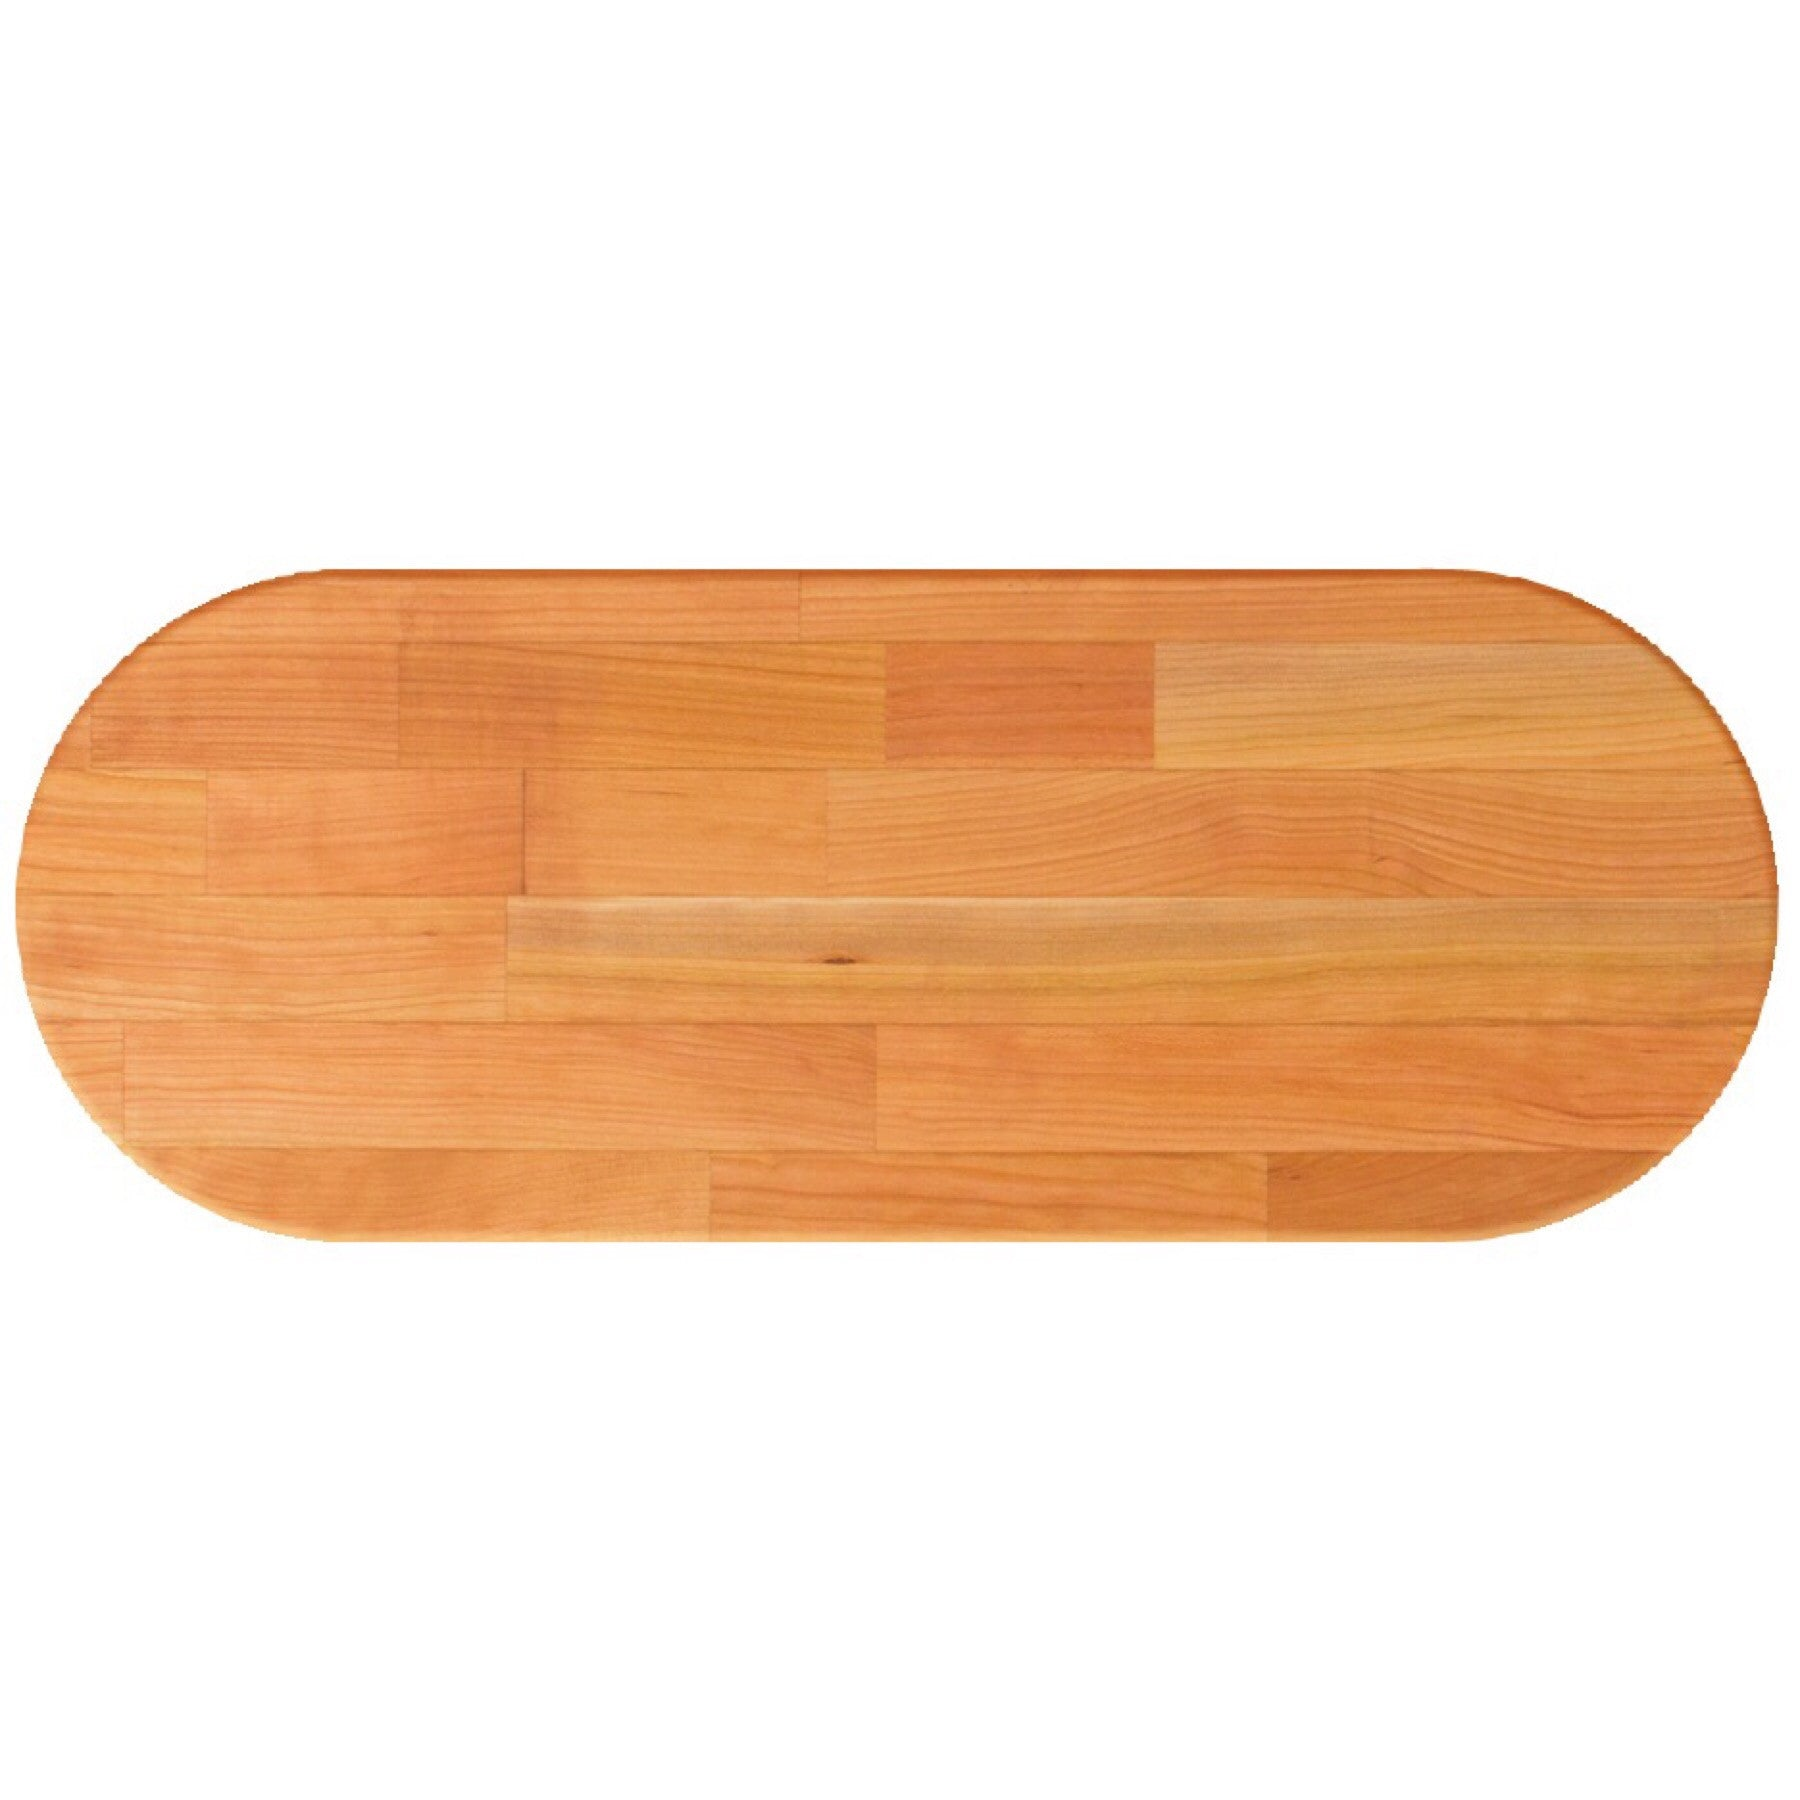 John Boos Oval RTC Blended Cherry Butcher Block Table Top